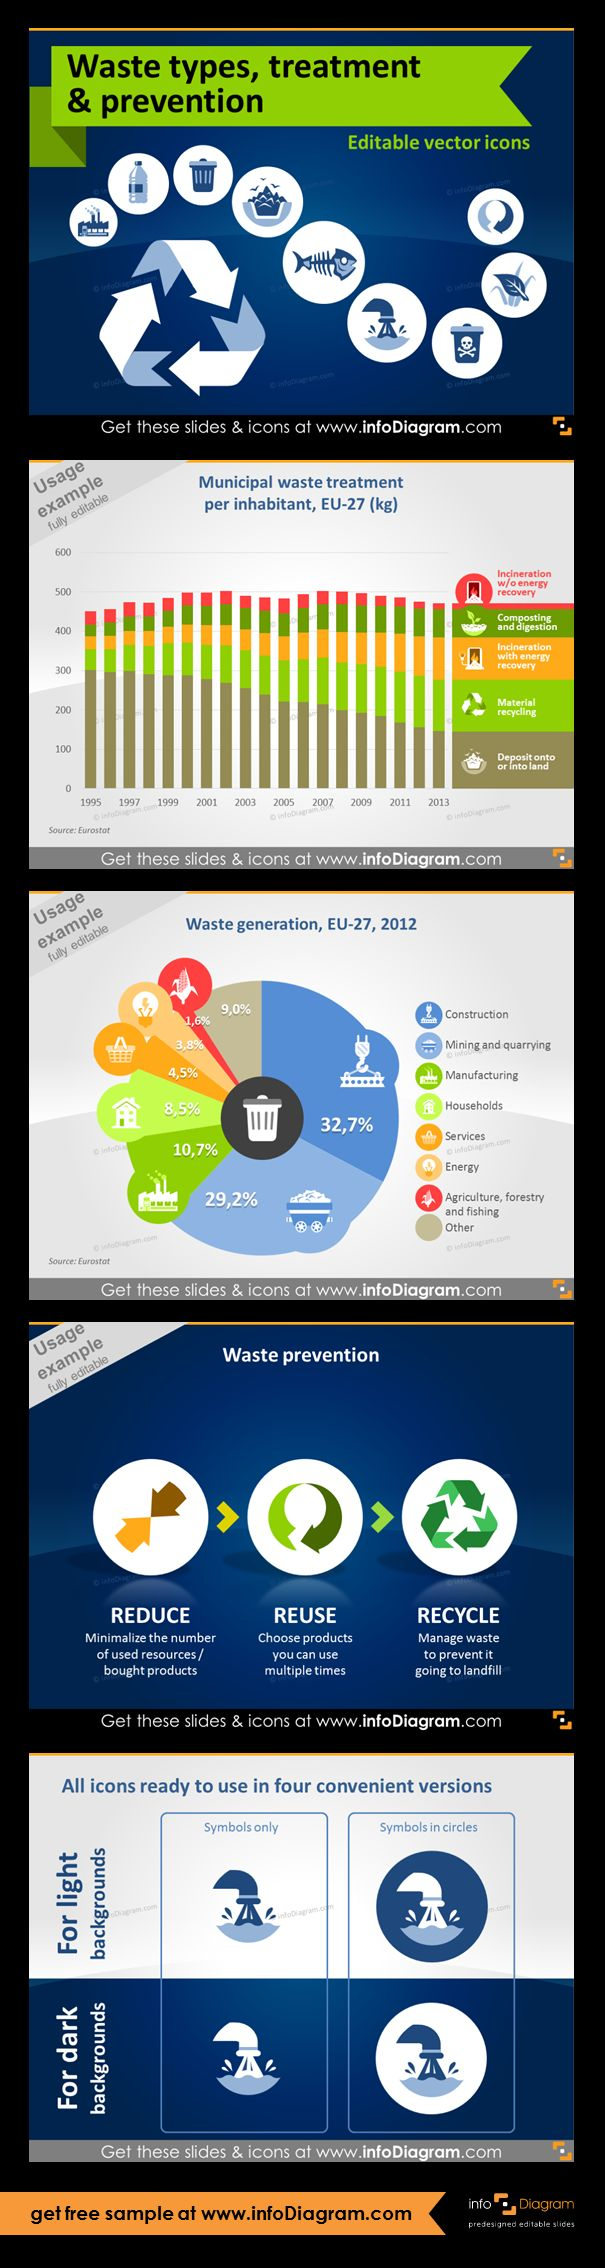 Waste and Ecology icons and visuals for waste industry presentations. Format: fully editable vector shapes in PowerPoint (color, filling, size - no quality loss when zoomed). Ecology Icons usage examples (Do it yourself infographics). Municipal waste treatment per inhabitant, EU-27 (kg) (chart with pictograms). Waste generation, EU-27, 2012 (chart with pictograms). Waste prevention diagram. PPT icons for light and dark background.